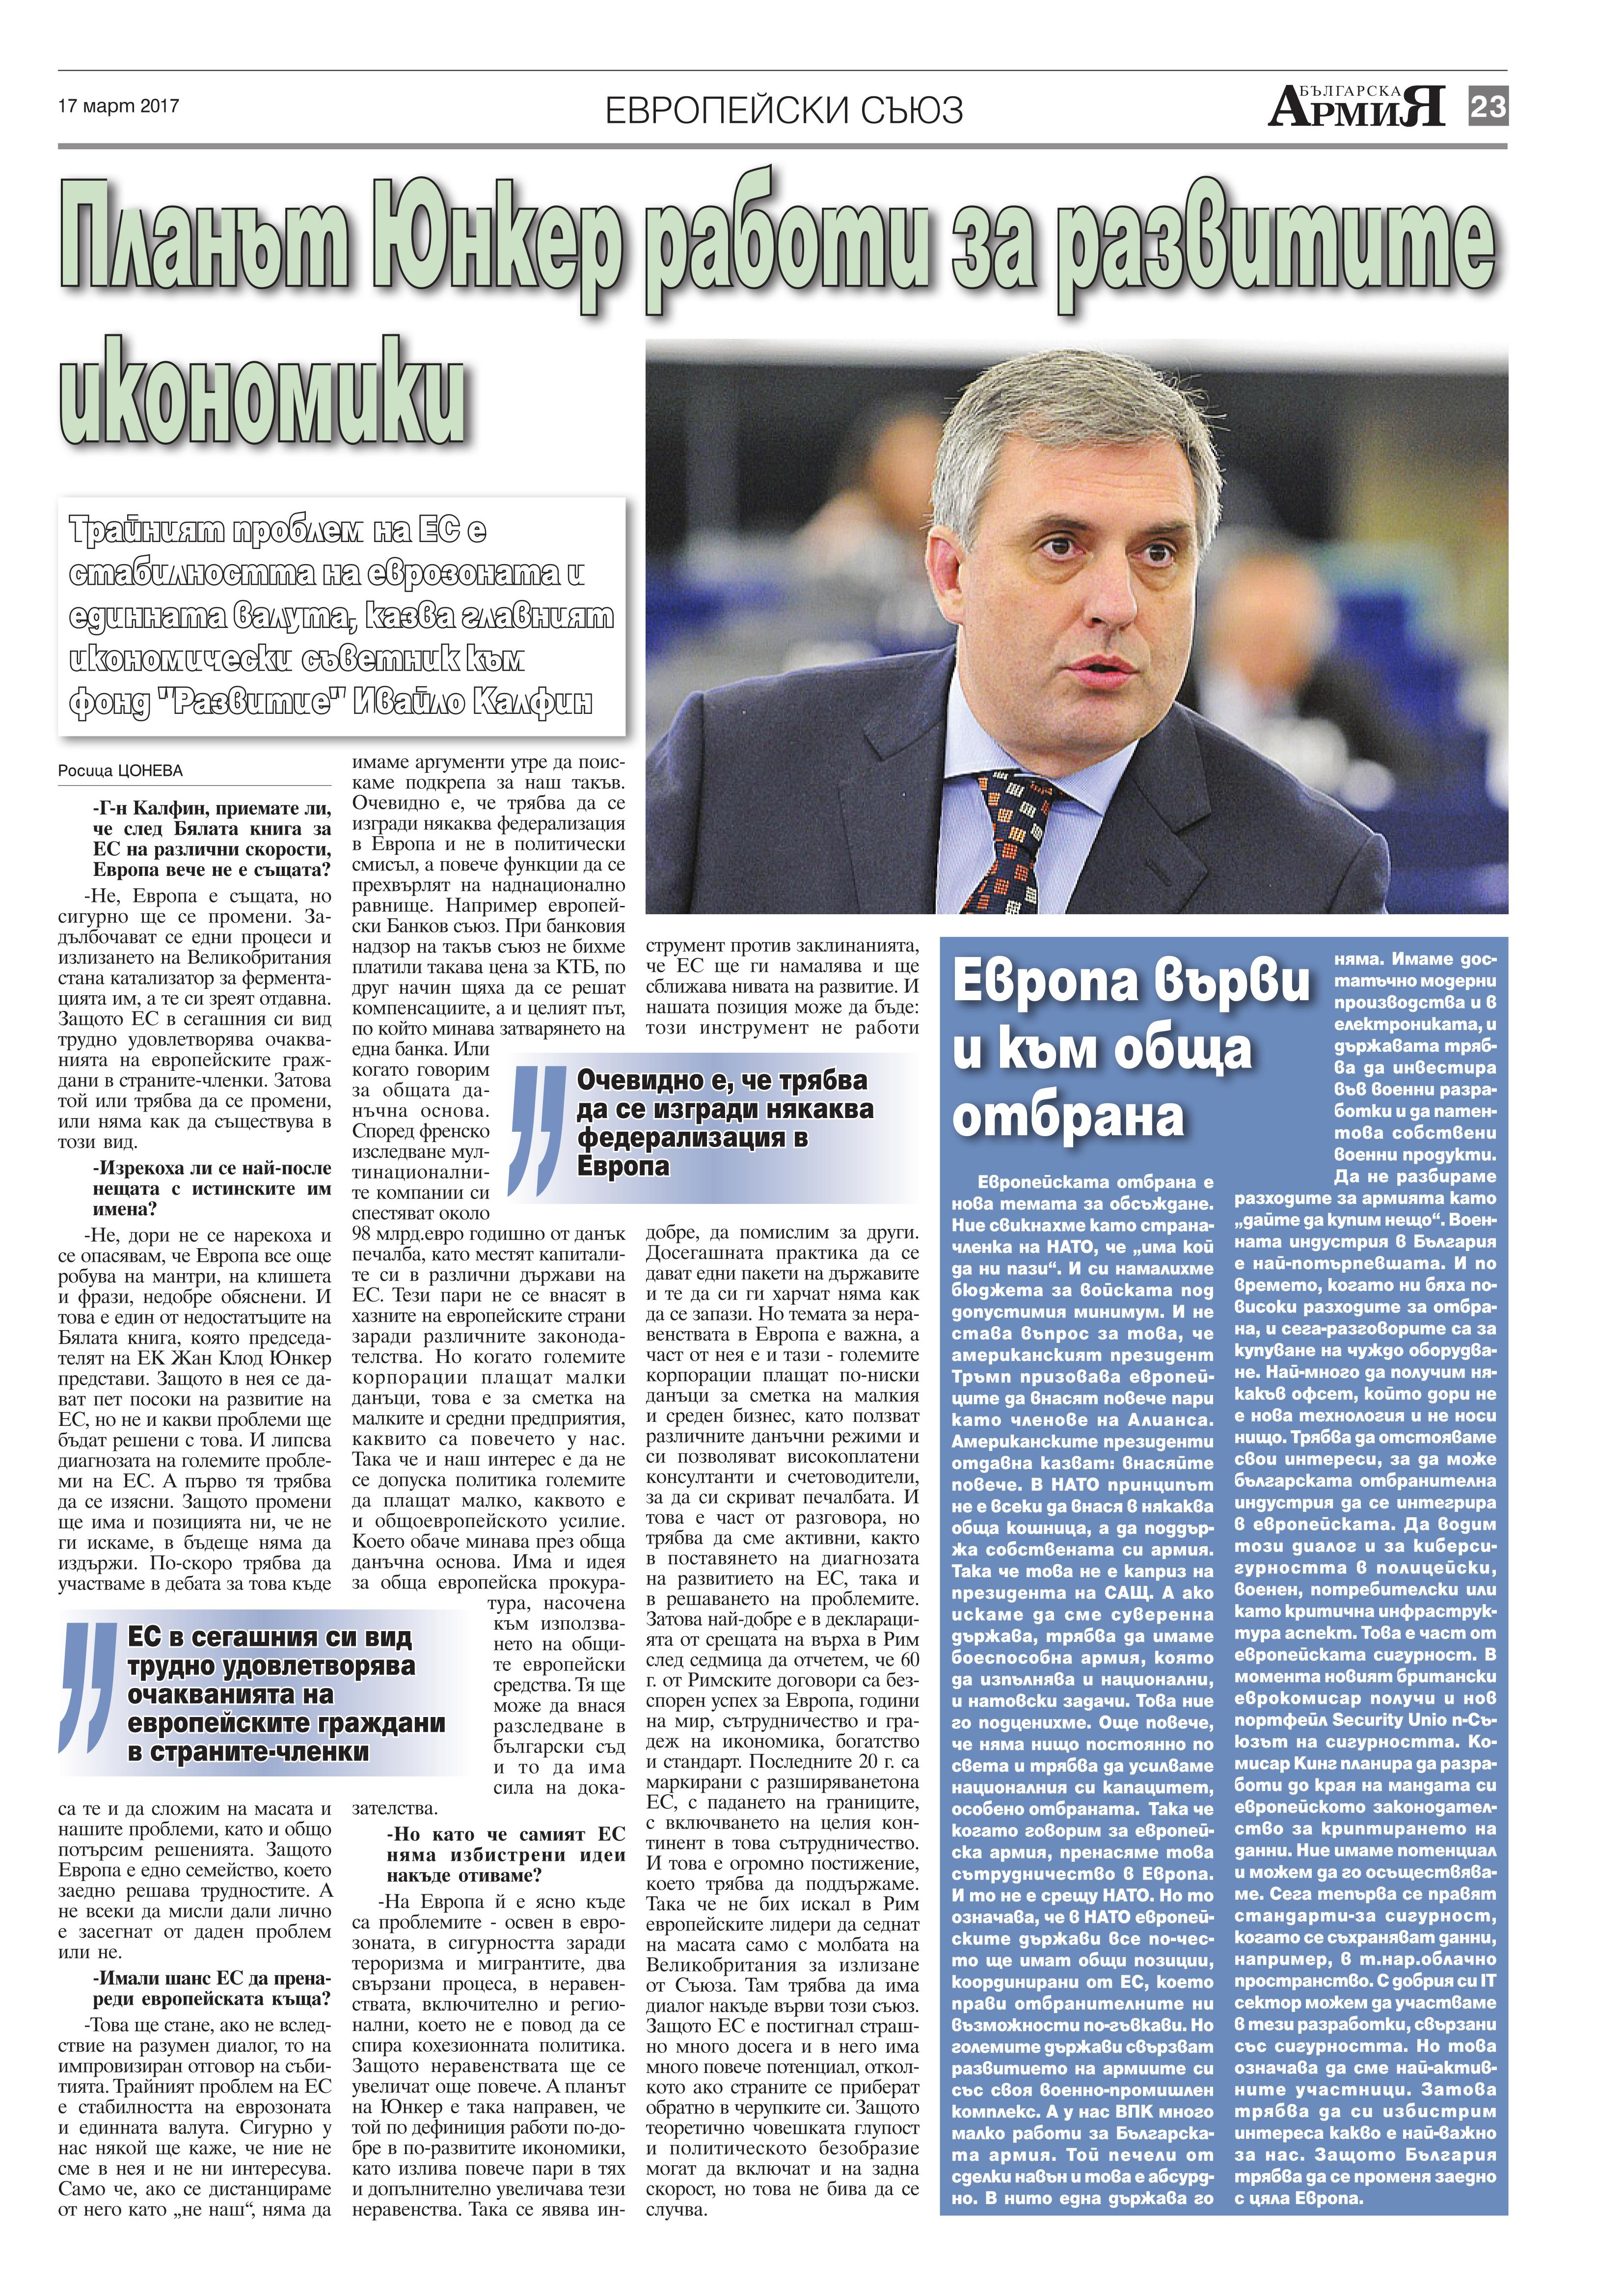 https://www.armymedia.bg/wp-content/uploads/2015/06/23.page1_-17.jpg